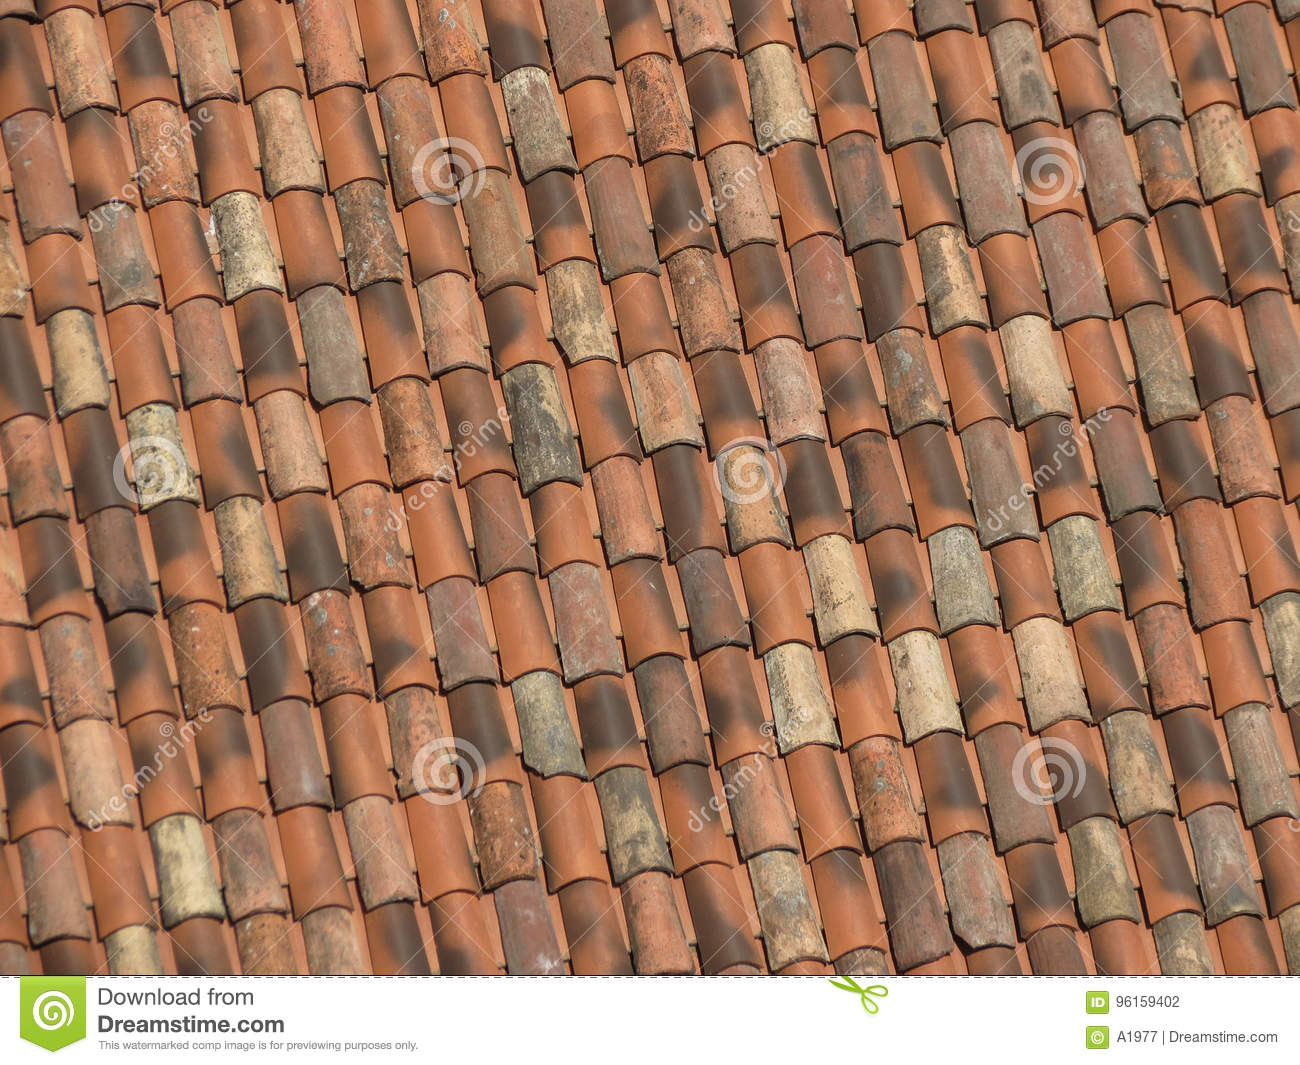 Brick Roof Texture red brick tile roof texture background stock photo - image of